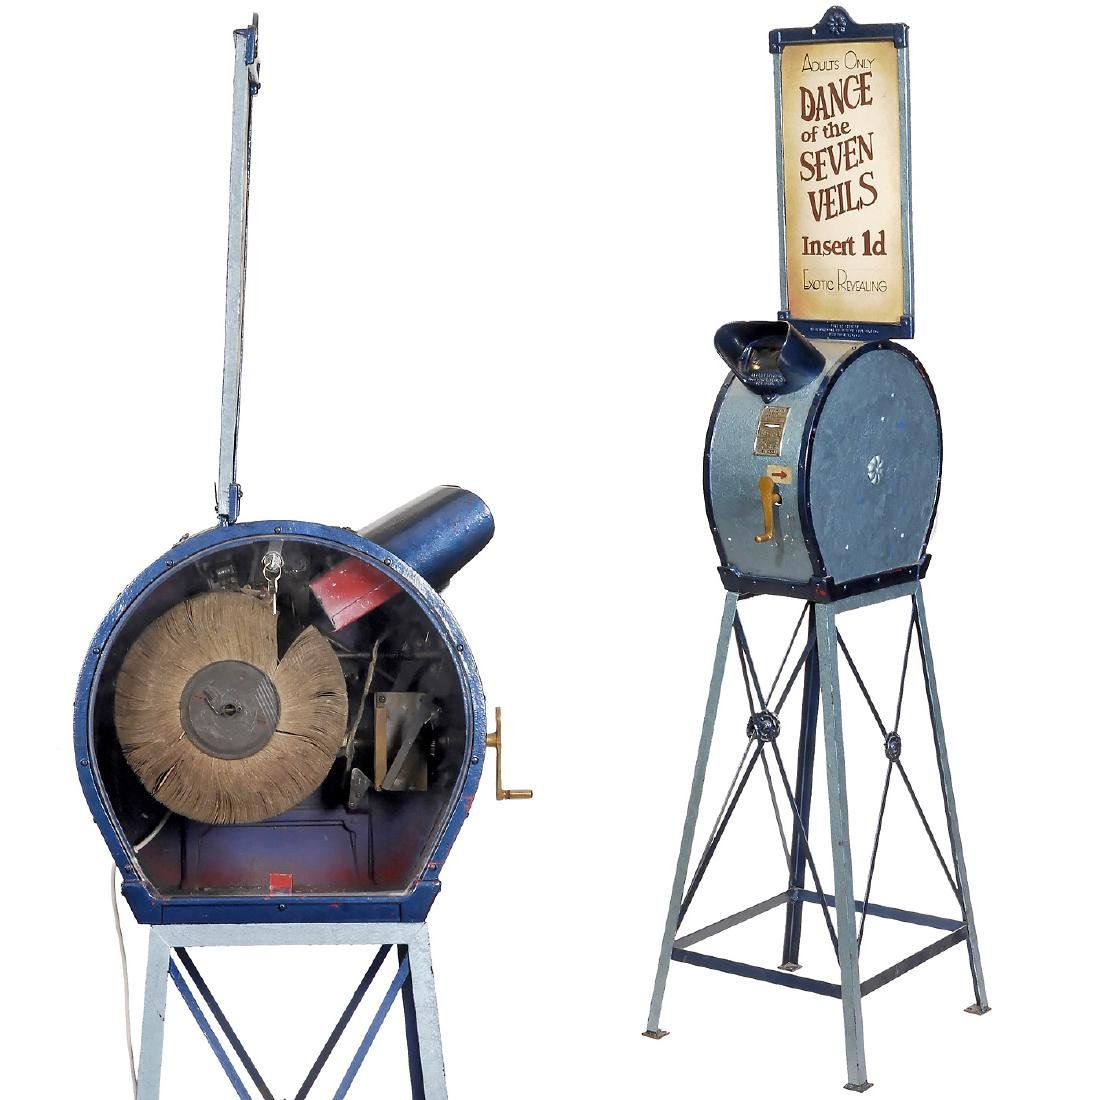 Original (Coin-Operated) Mutoscope with Reel, c. 1930